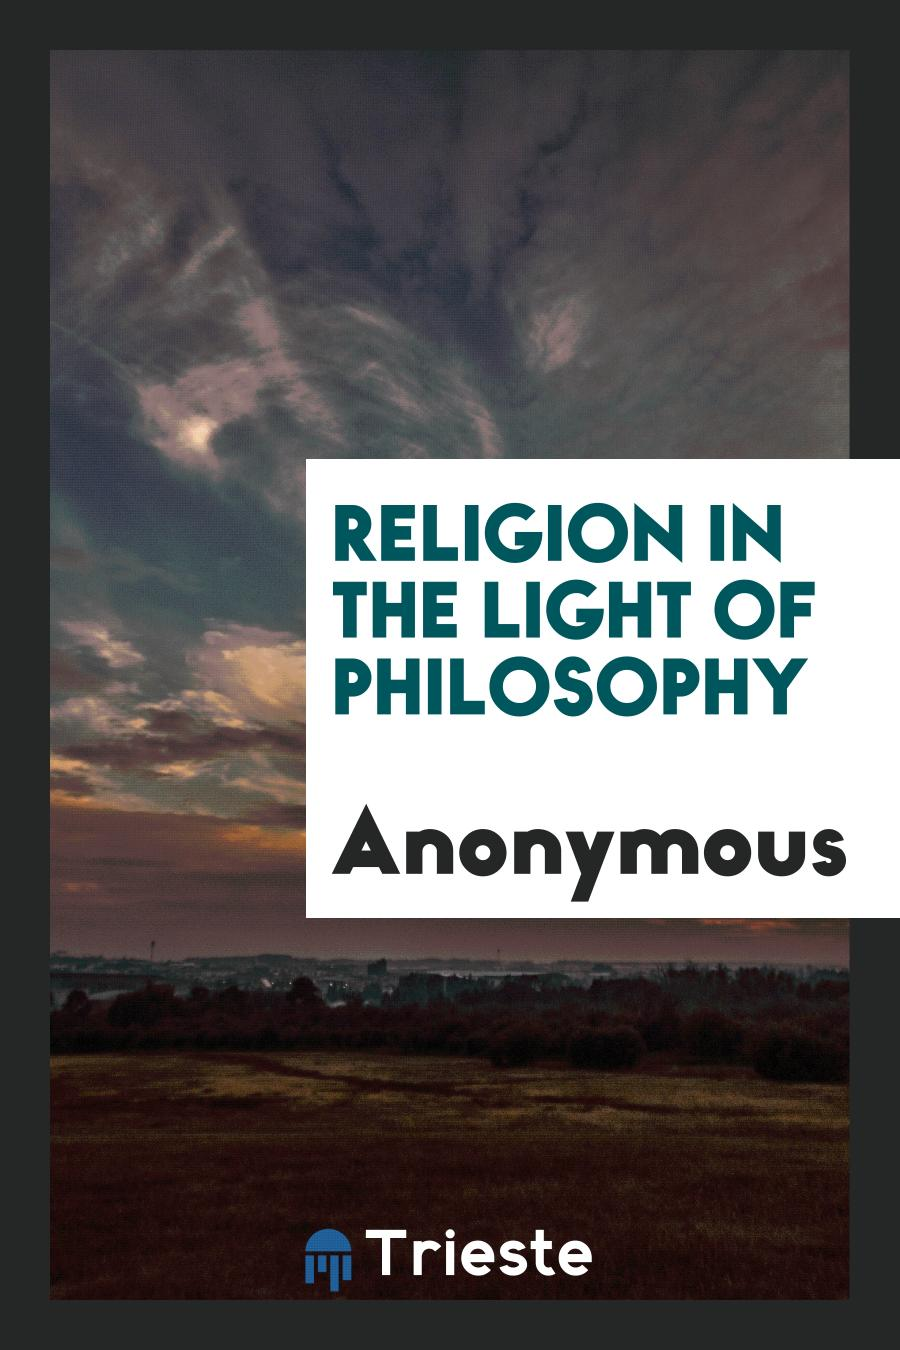 Religion in the Light of Philosophy